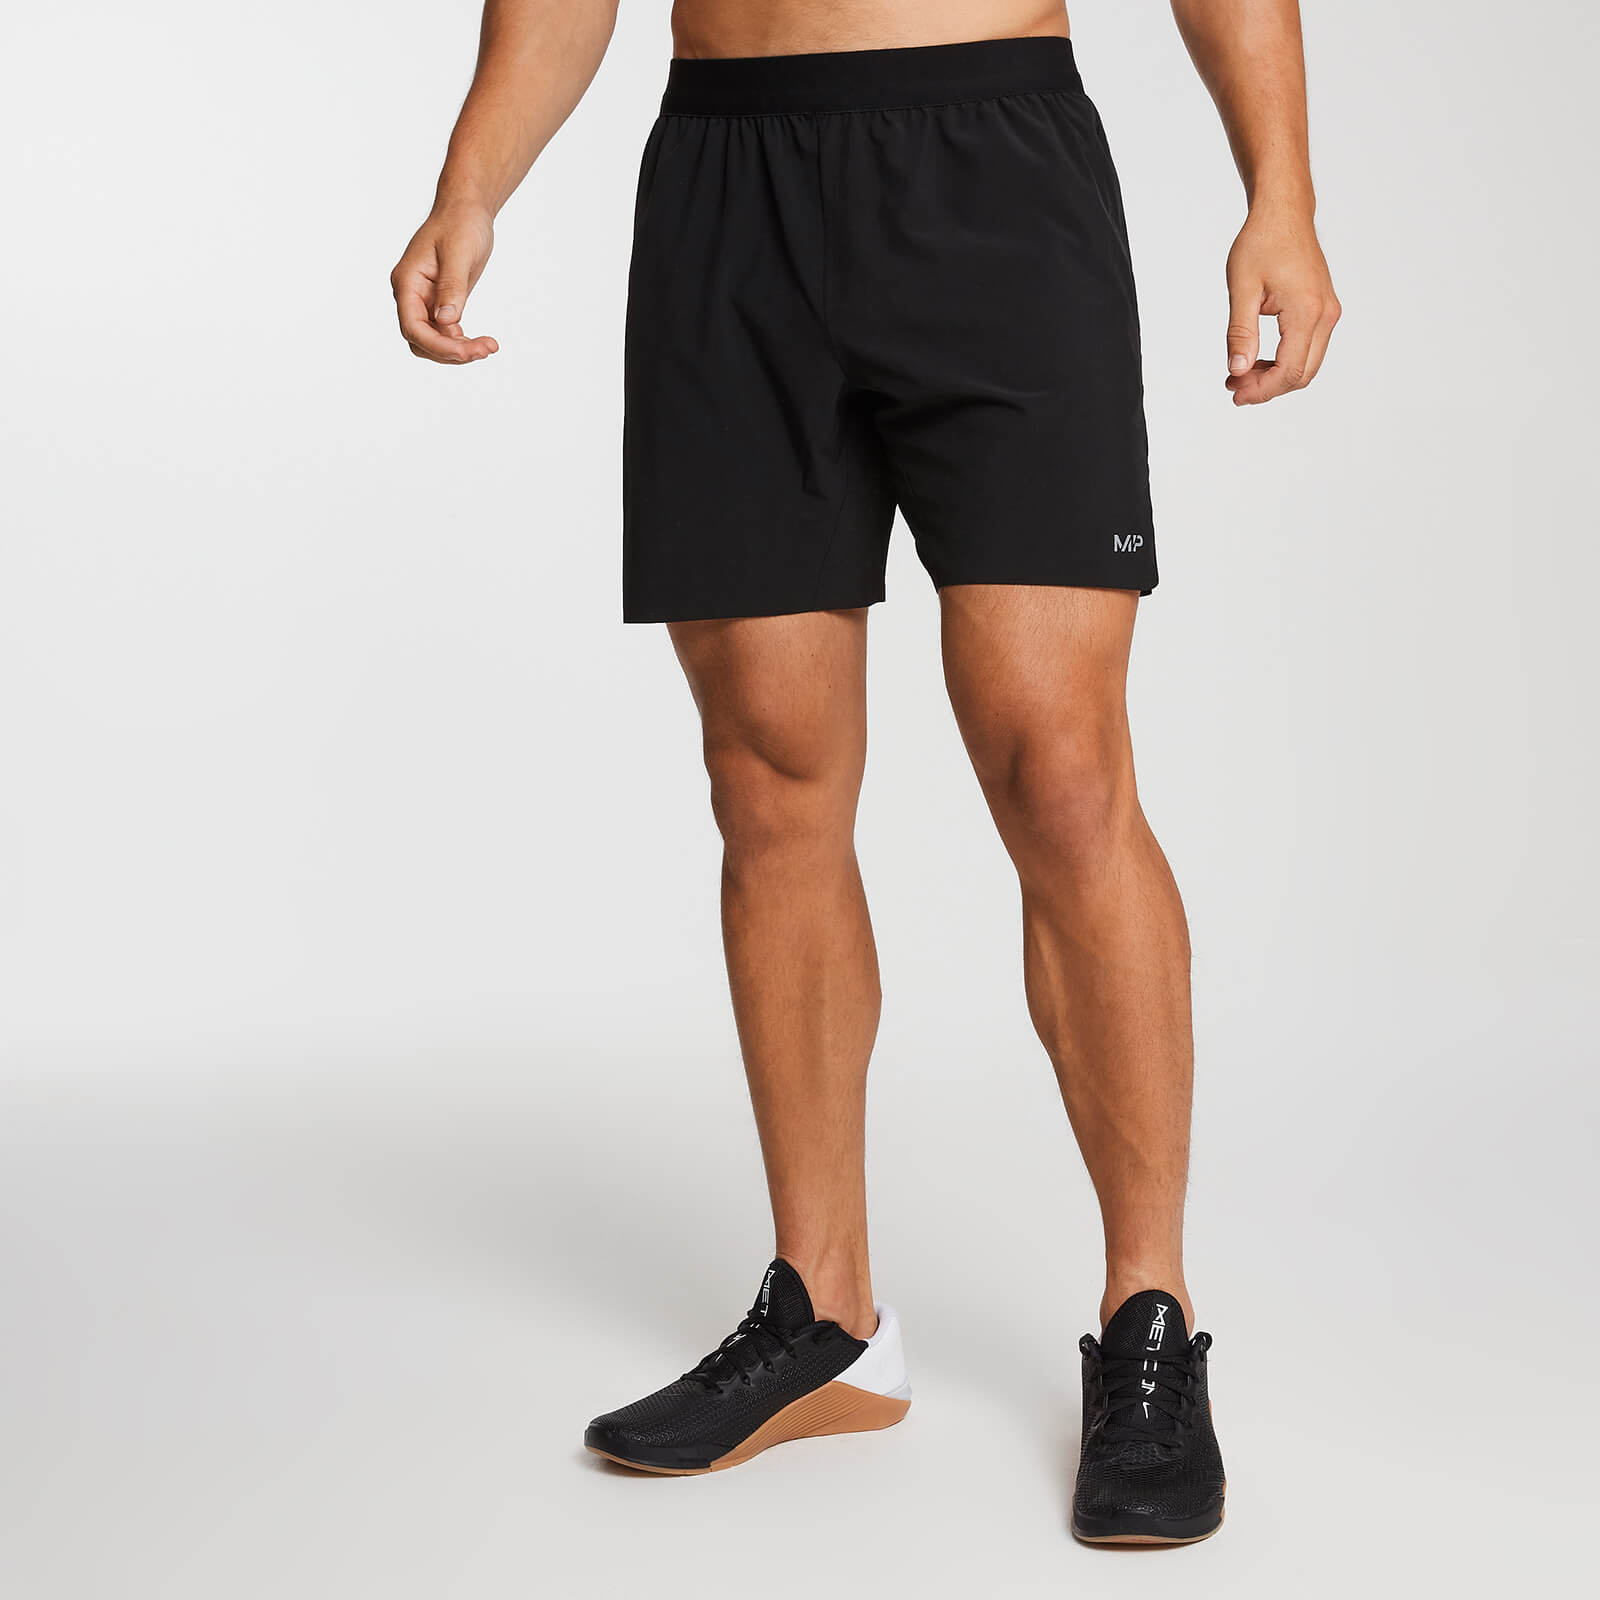 MP Herren Essentials Best Training Shorts - Schwarz - XS von MP